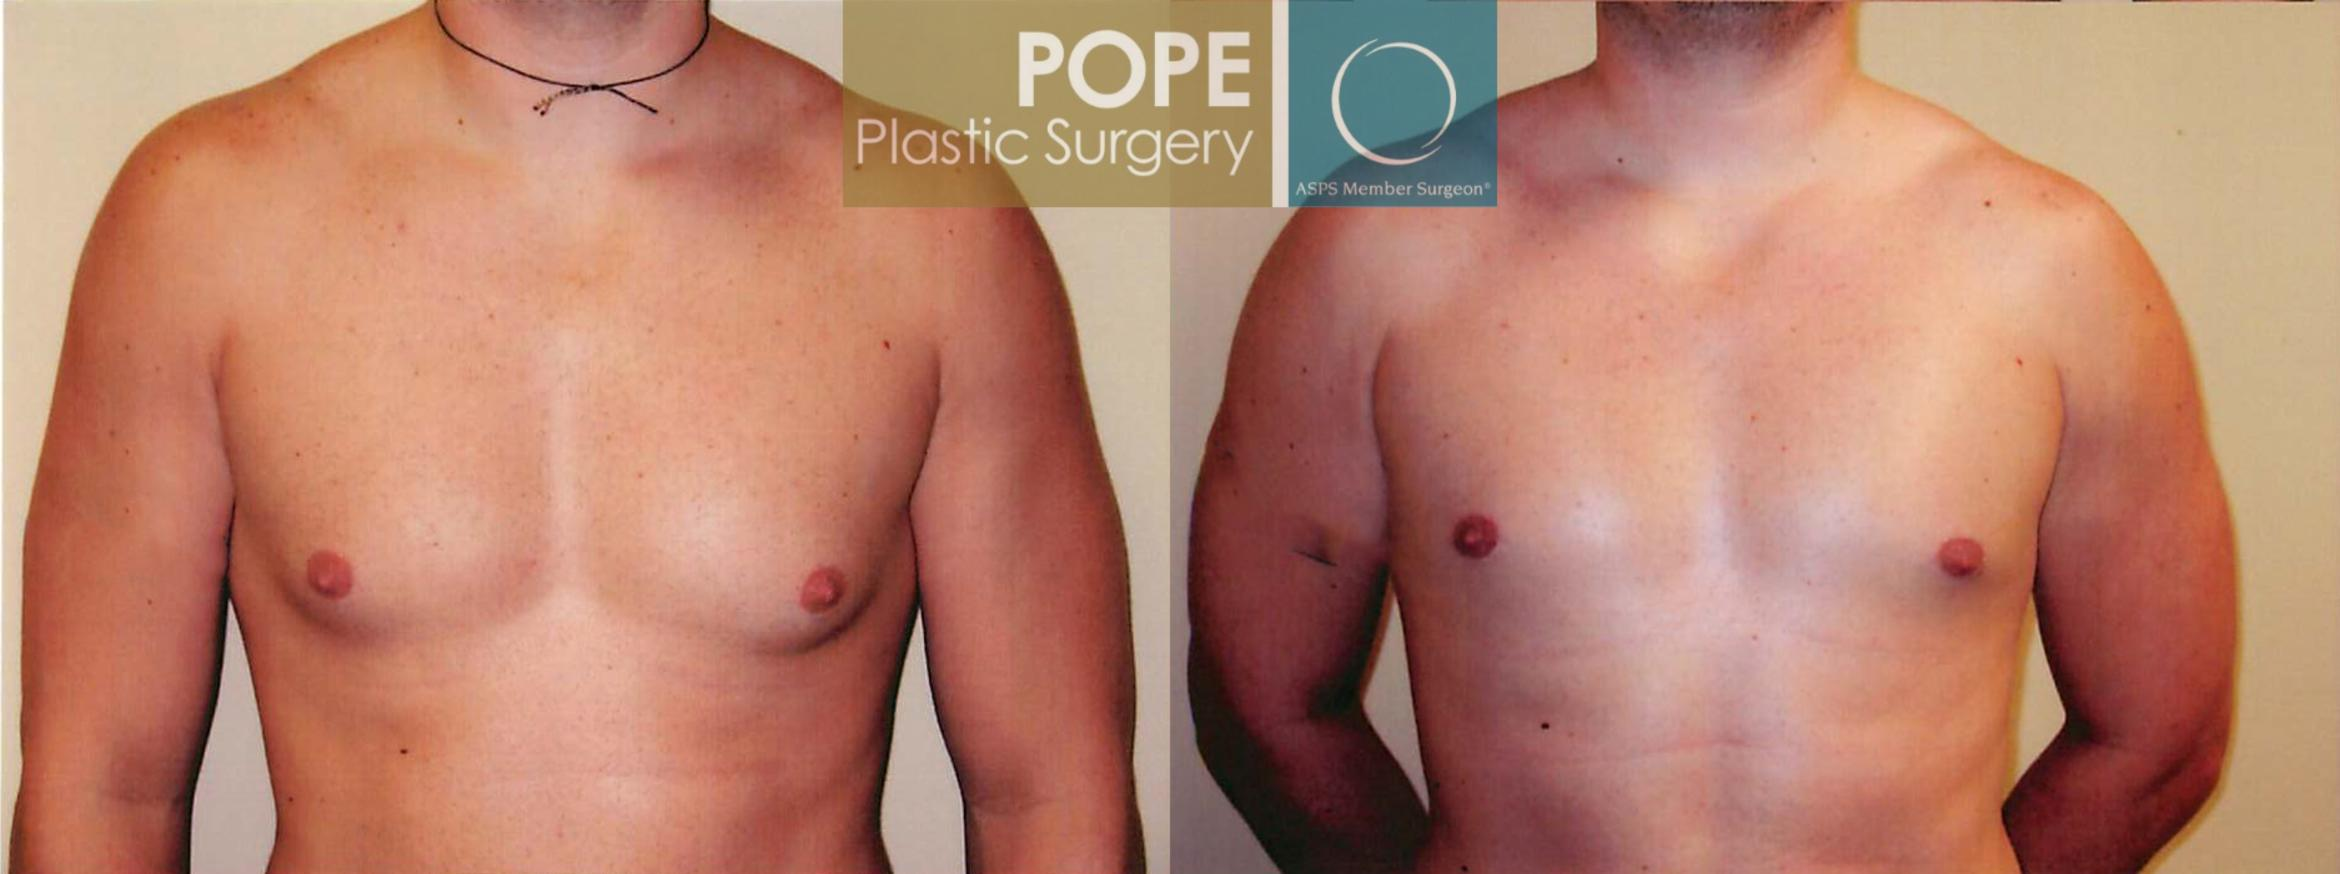 Male Breast Reduction Case 98 Before & After View #1 | Orlando, FL | Pope Plastic Surgery